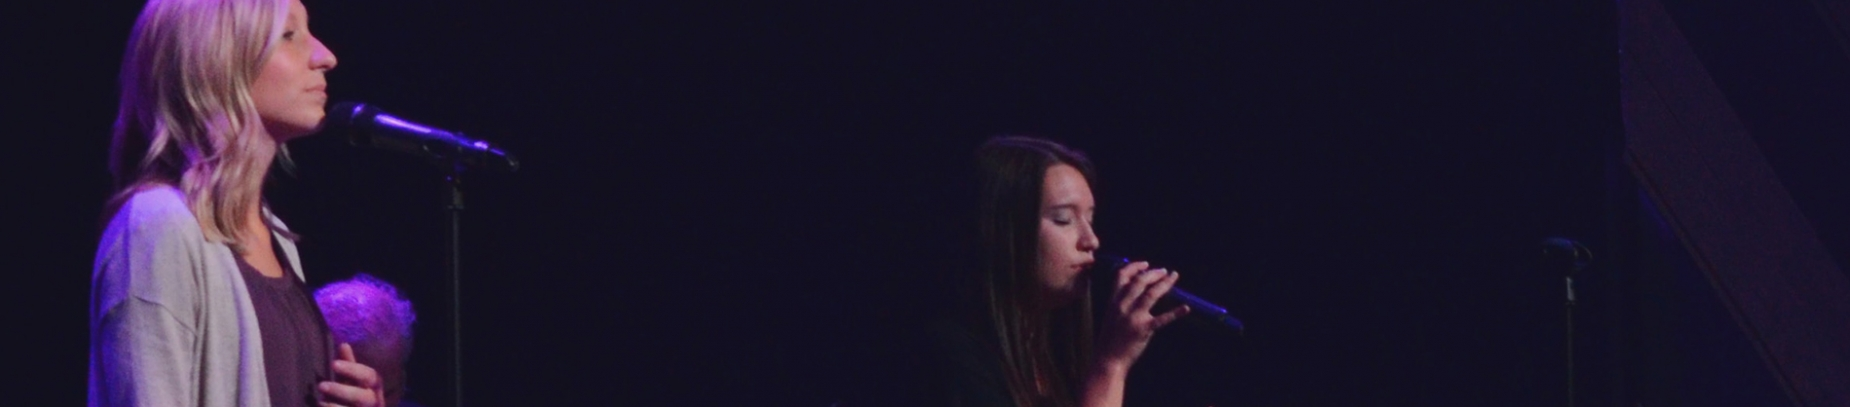 Two women leading worship on a dark stage